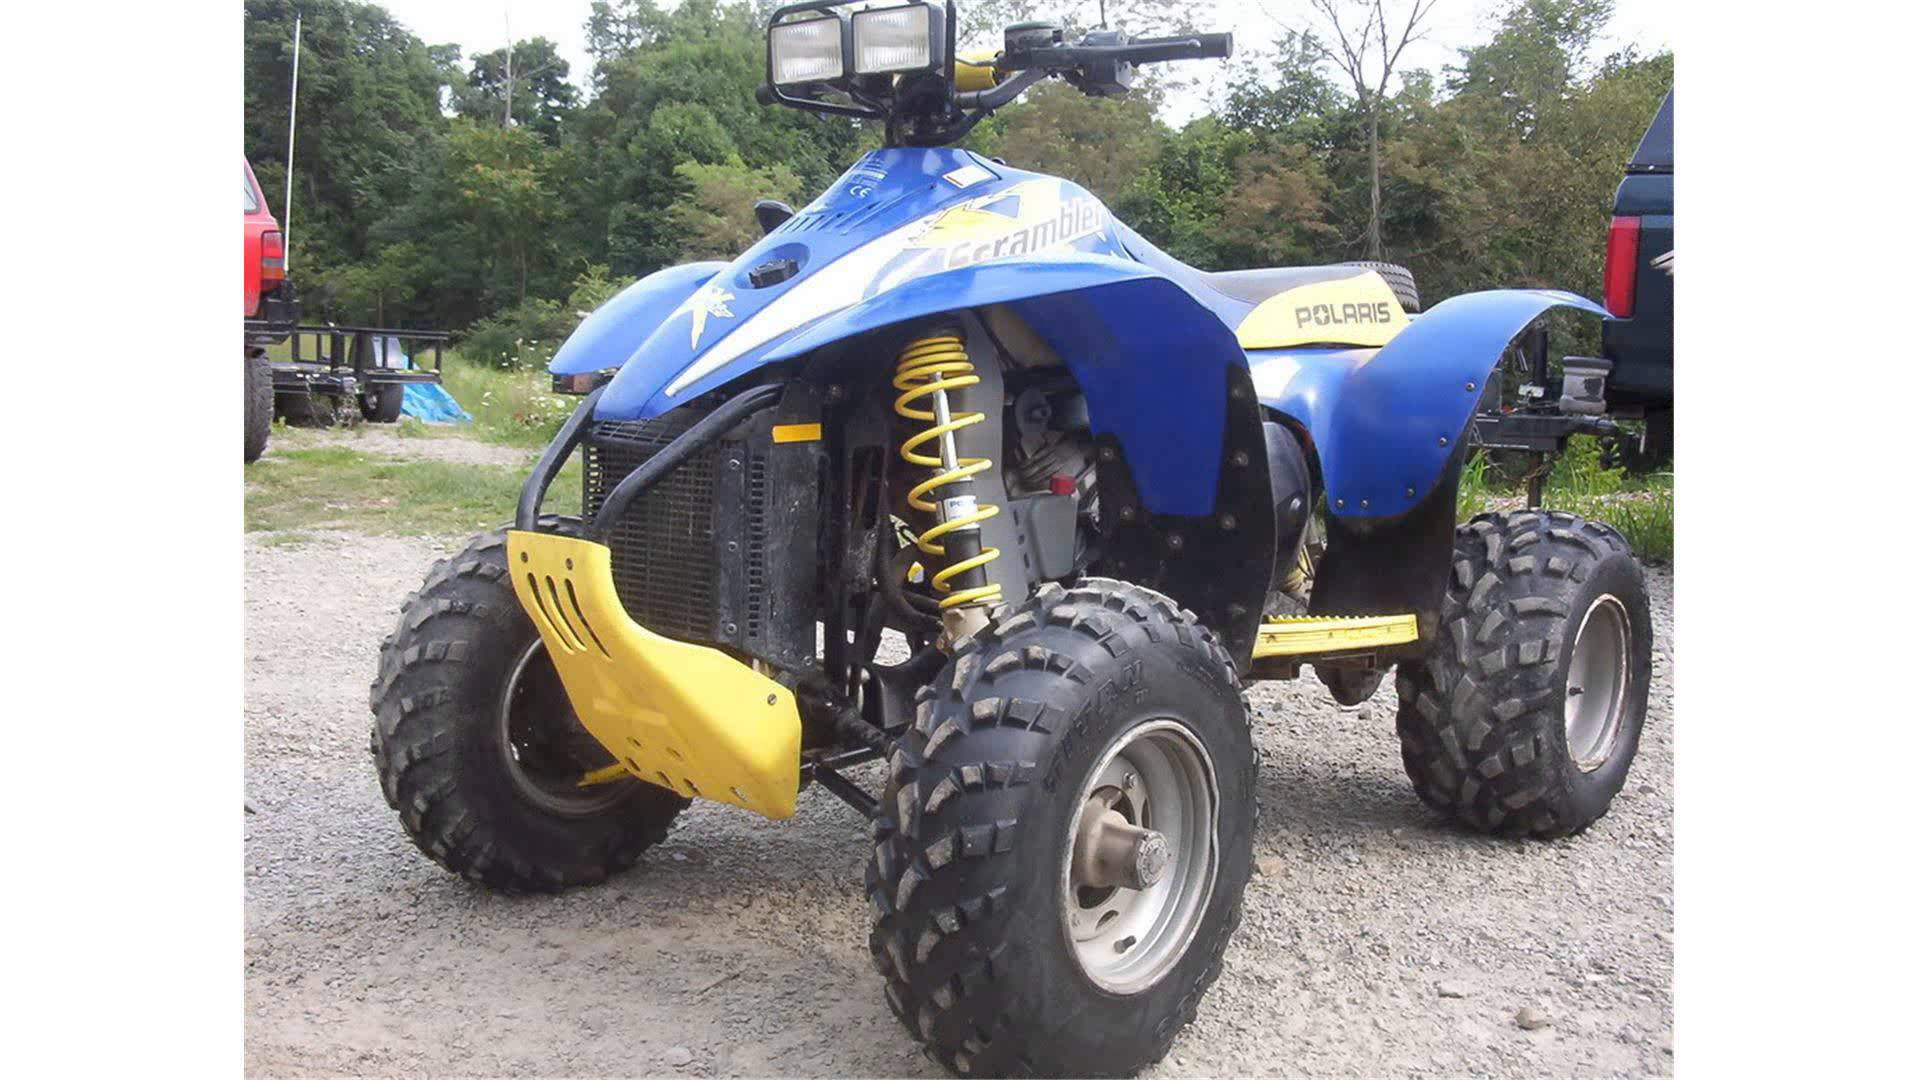 Polaris Scrambler 400 1999 images #120839